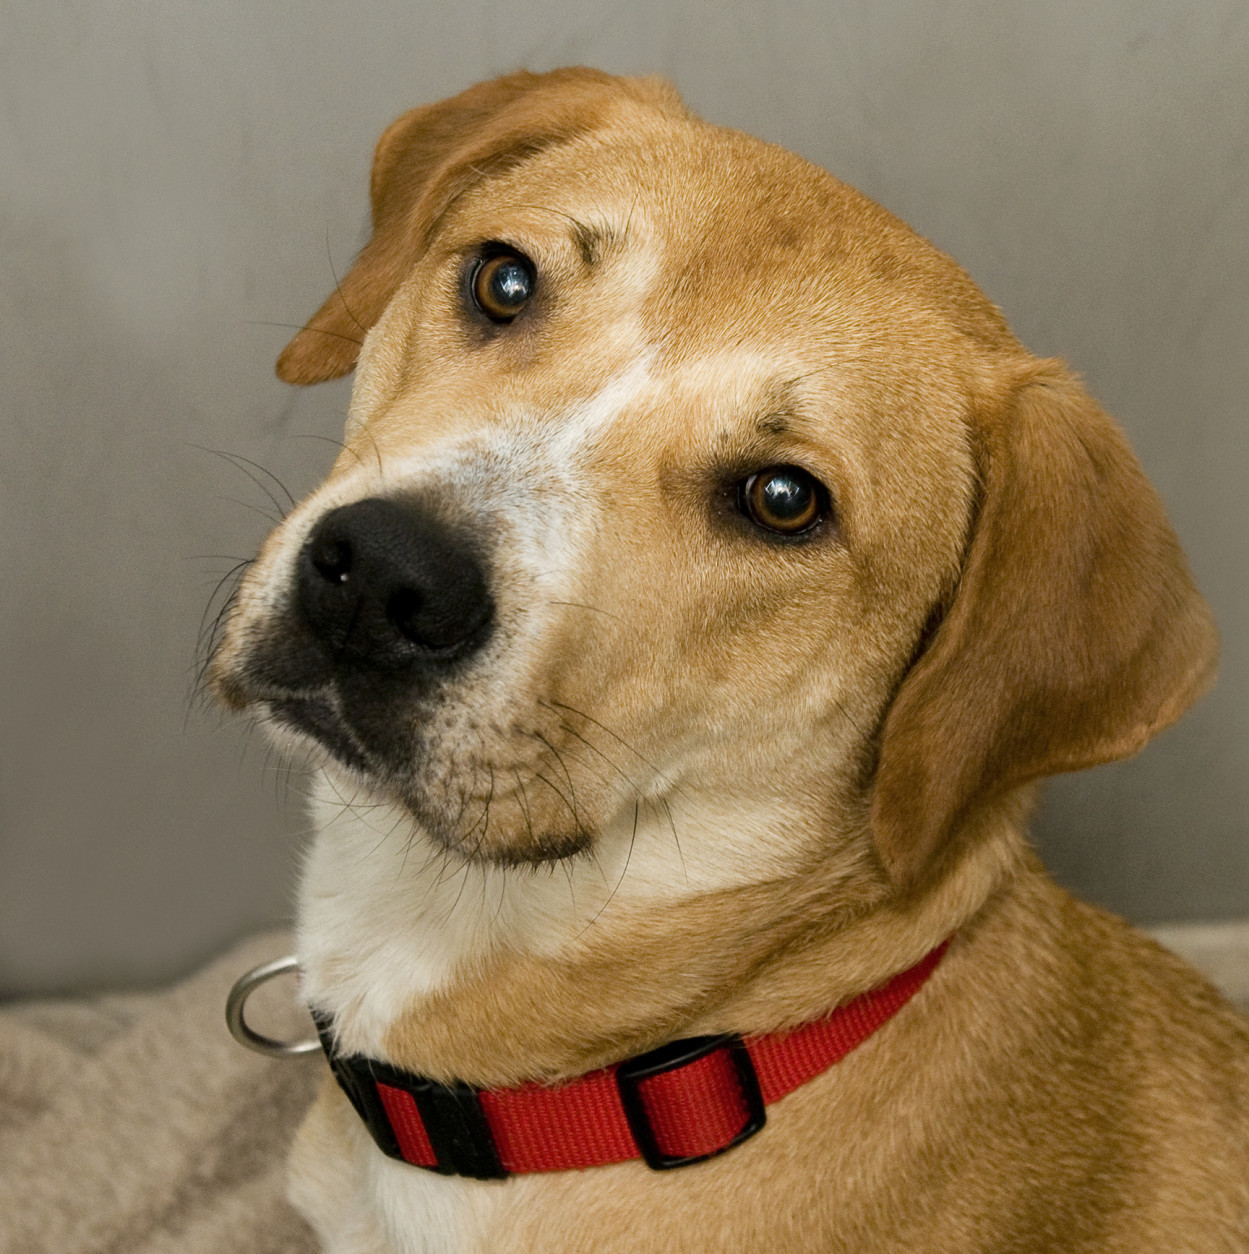 Pet of the Week: Tulip  Feb. 16: Tip toe through the tulips? Well this is just what Tulip would like to do with you!  Meet this sweet three  year-old hound mix with a pretty light tan coat and nice disposition.   She is a friendly, energetic gal who loves to take walks and smell all that the world has to offer.  Tulip would prefer to skip the dog parks, as she is a bit dog selective.  However she could live with calm, older dogs.  Come out to the Washington Animal Rescue League to meet Tulip, this week's Pet of the Week.  She can't wait to meet you! (Washington Animal Rescue League)